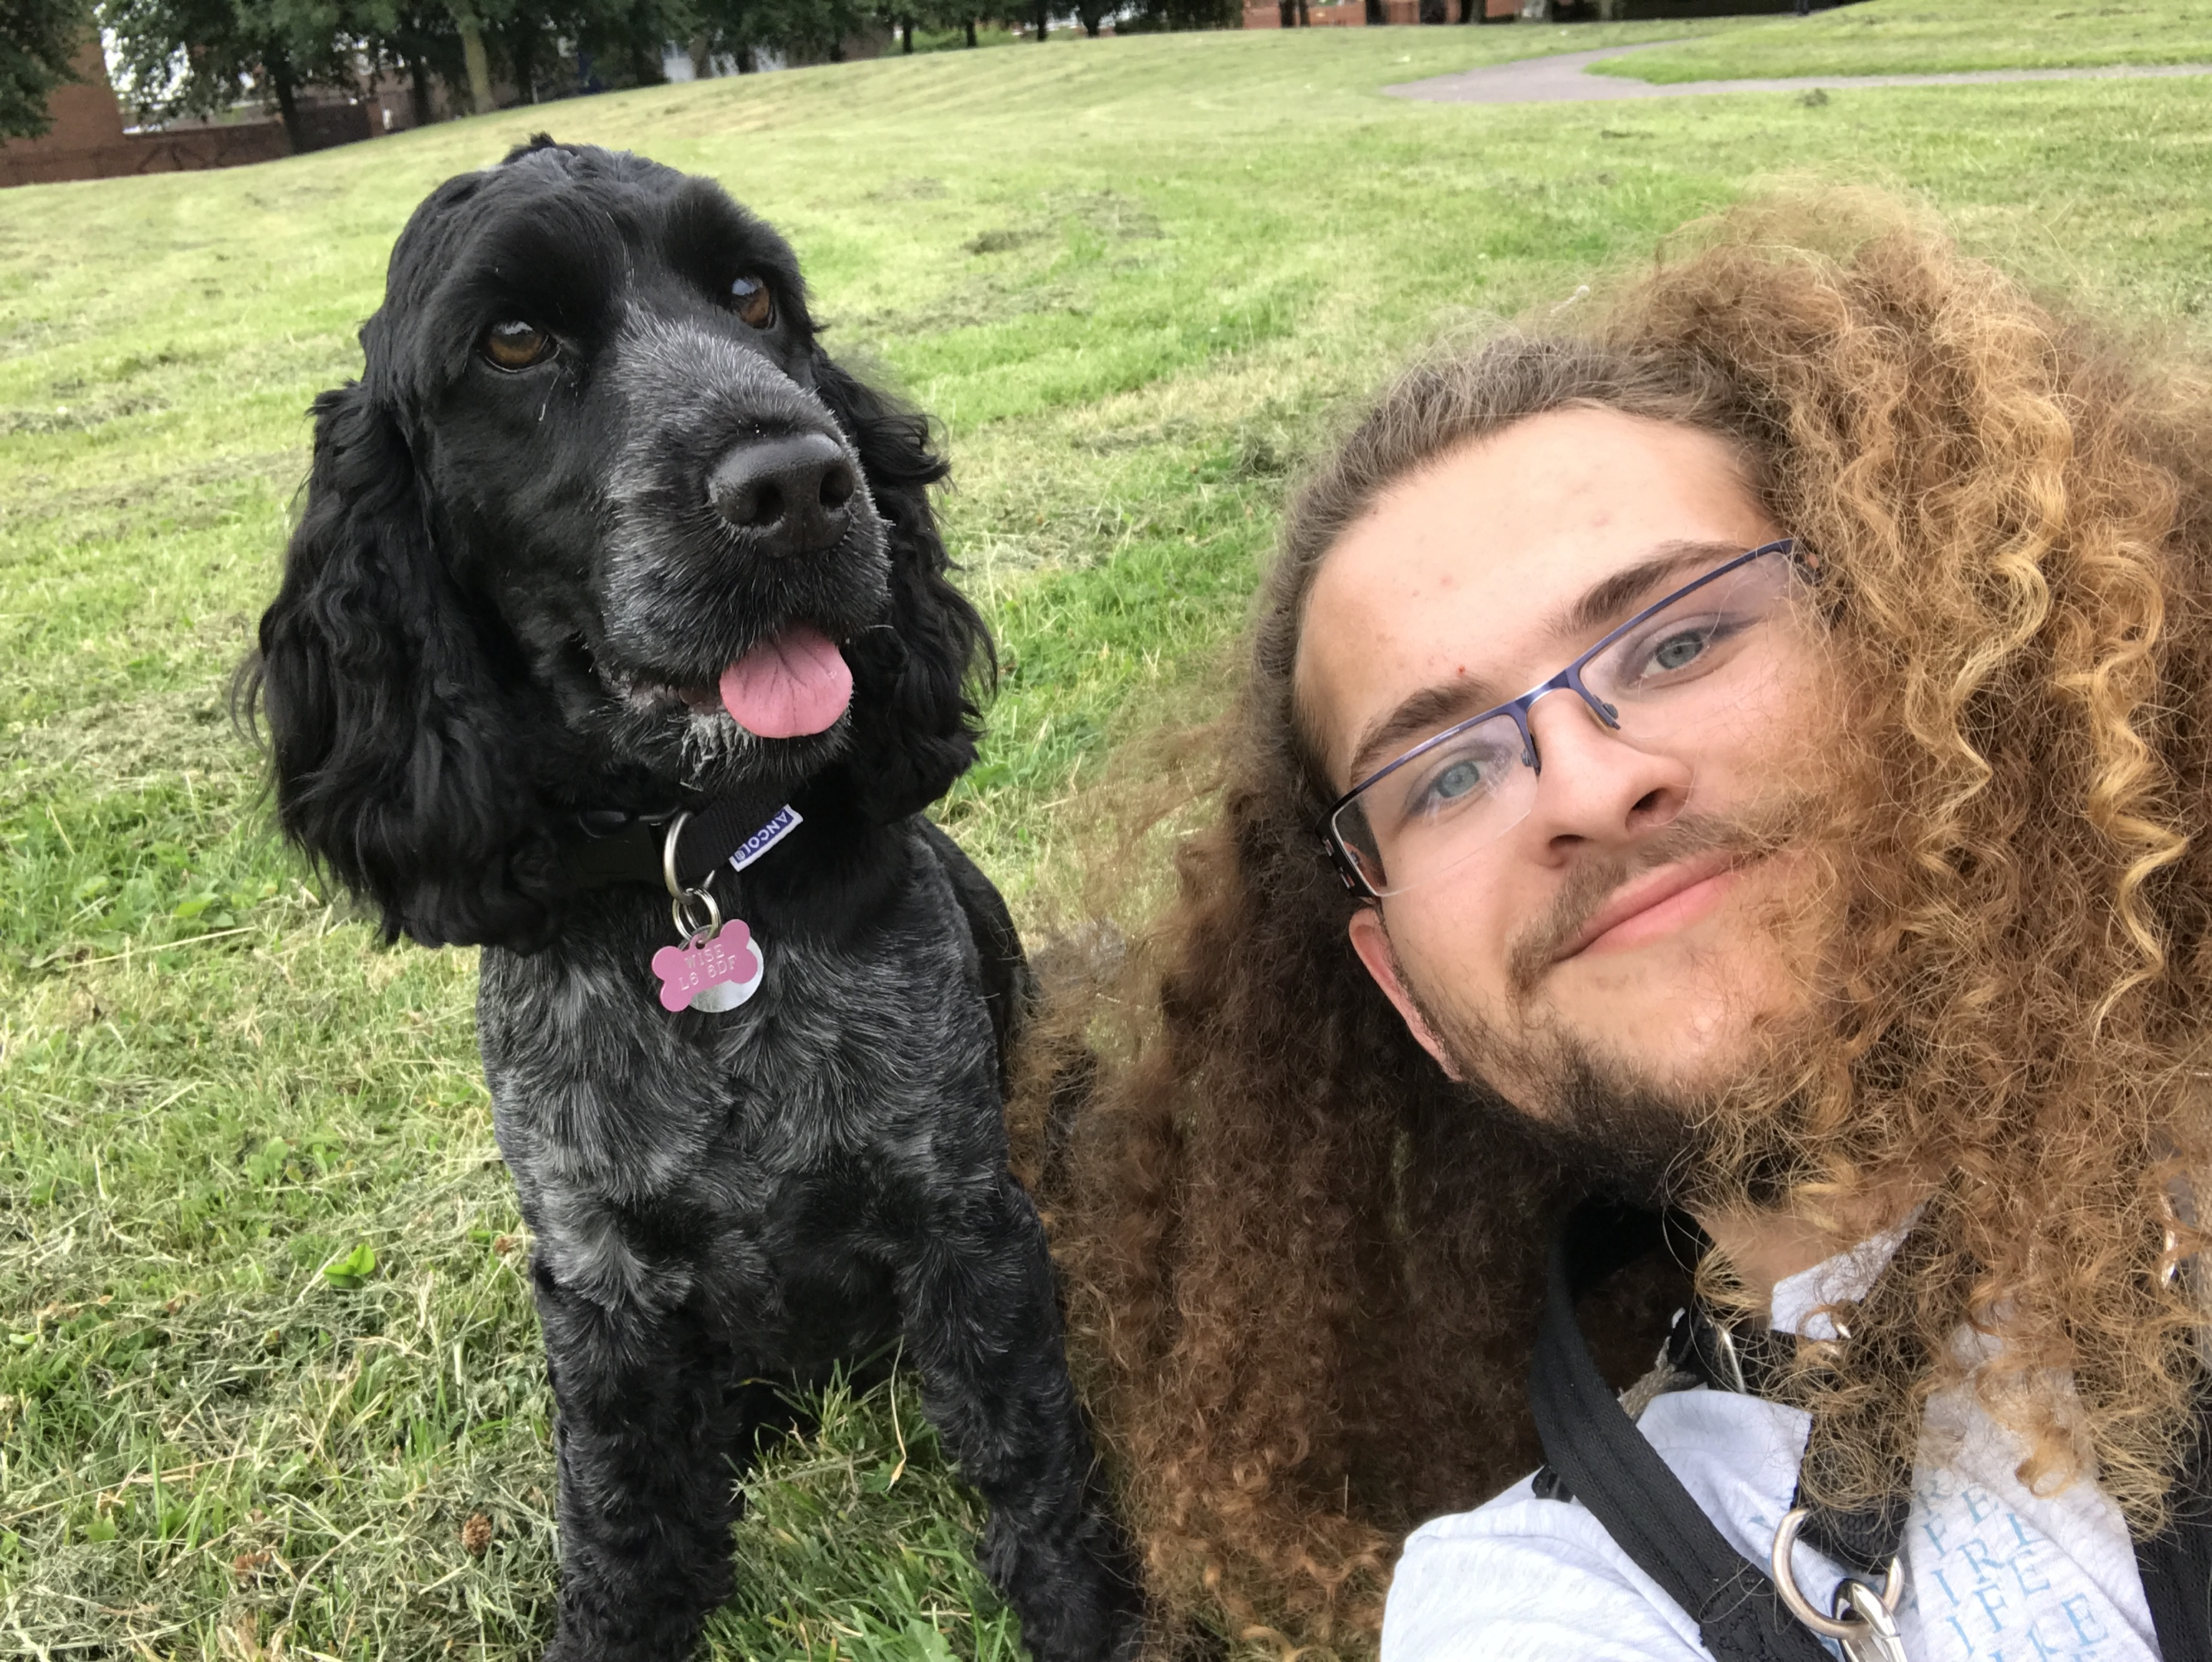 Deaf man, with glasses and long hair, with black dog